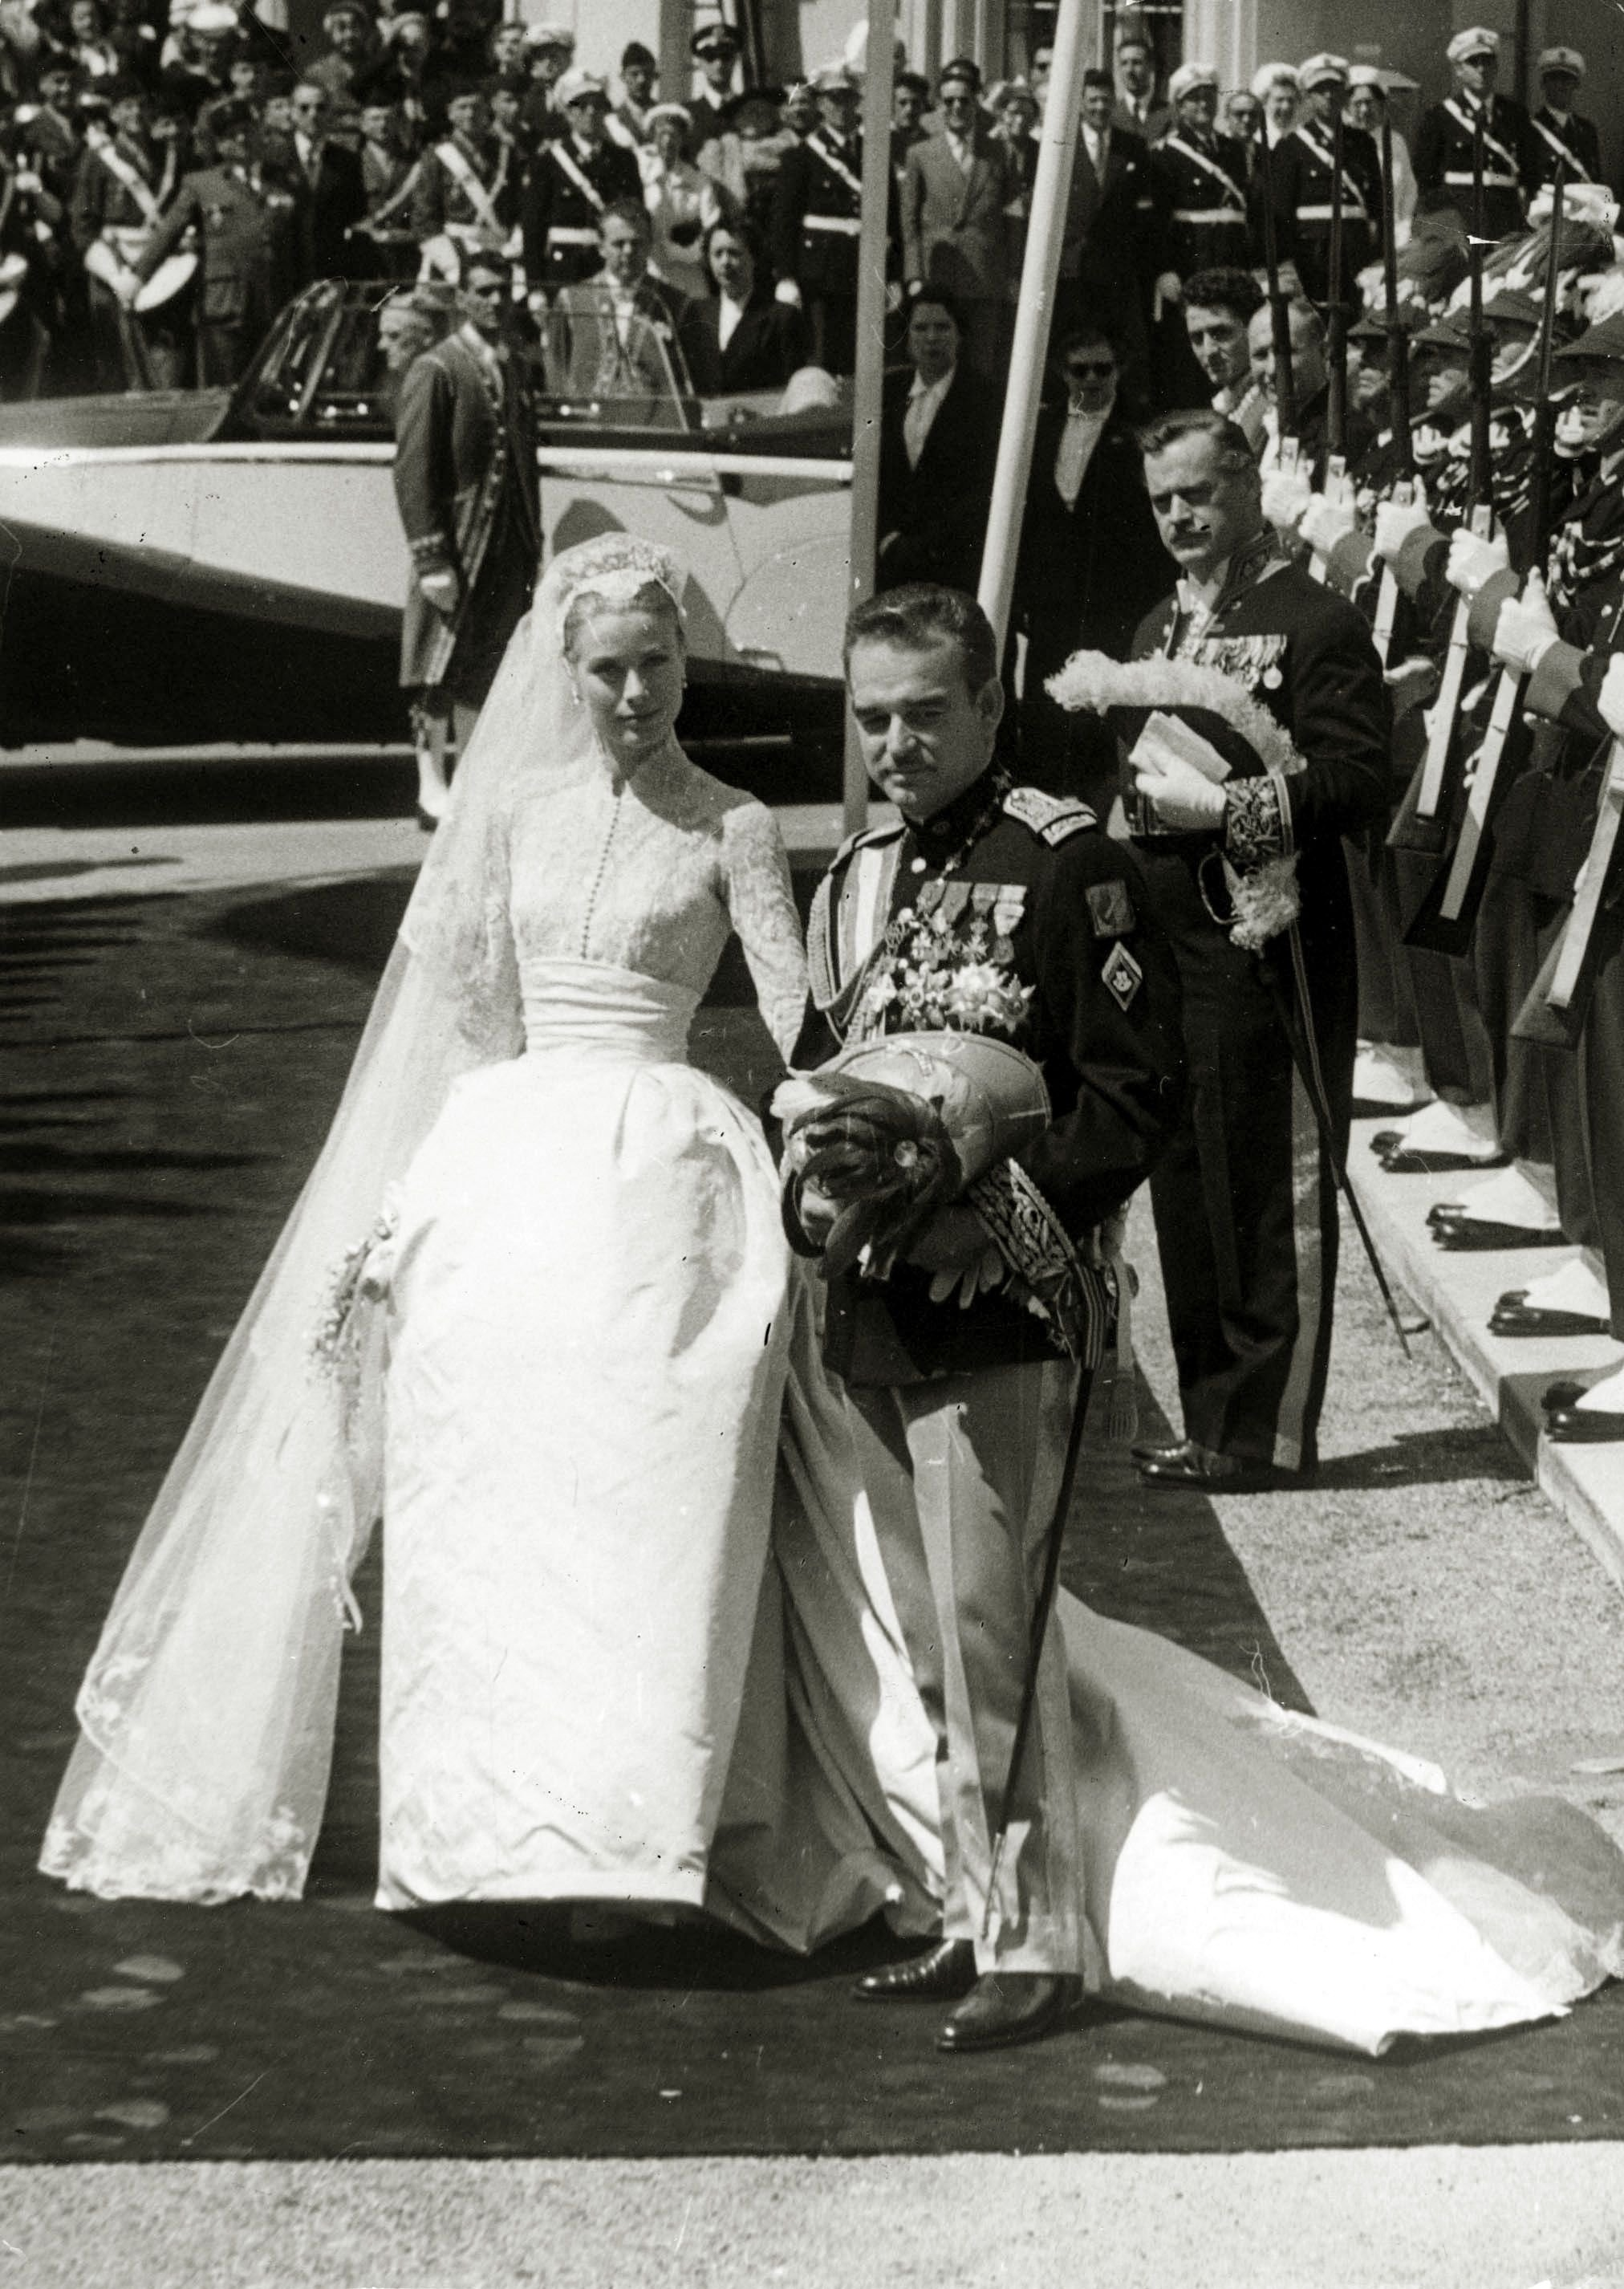 Prince Rainier III and Princess Grace Kelly of Monaco during their wedding, 20th century. | Source: Getty Images